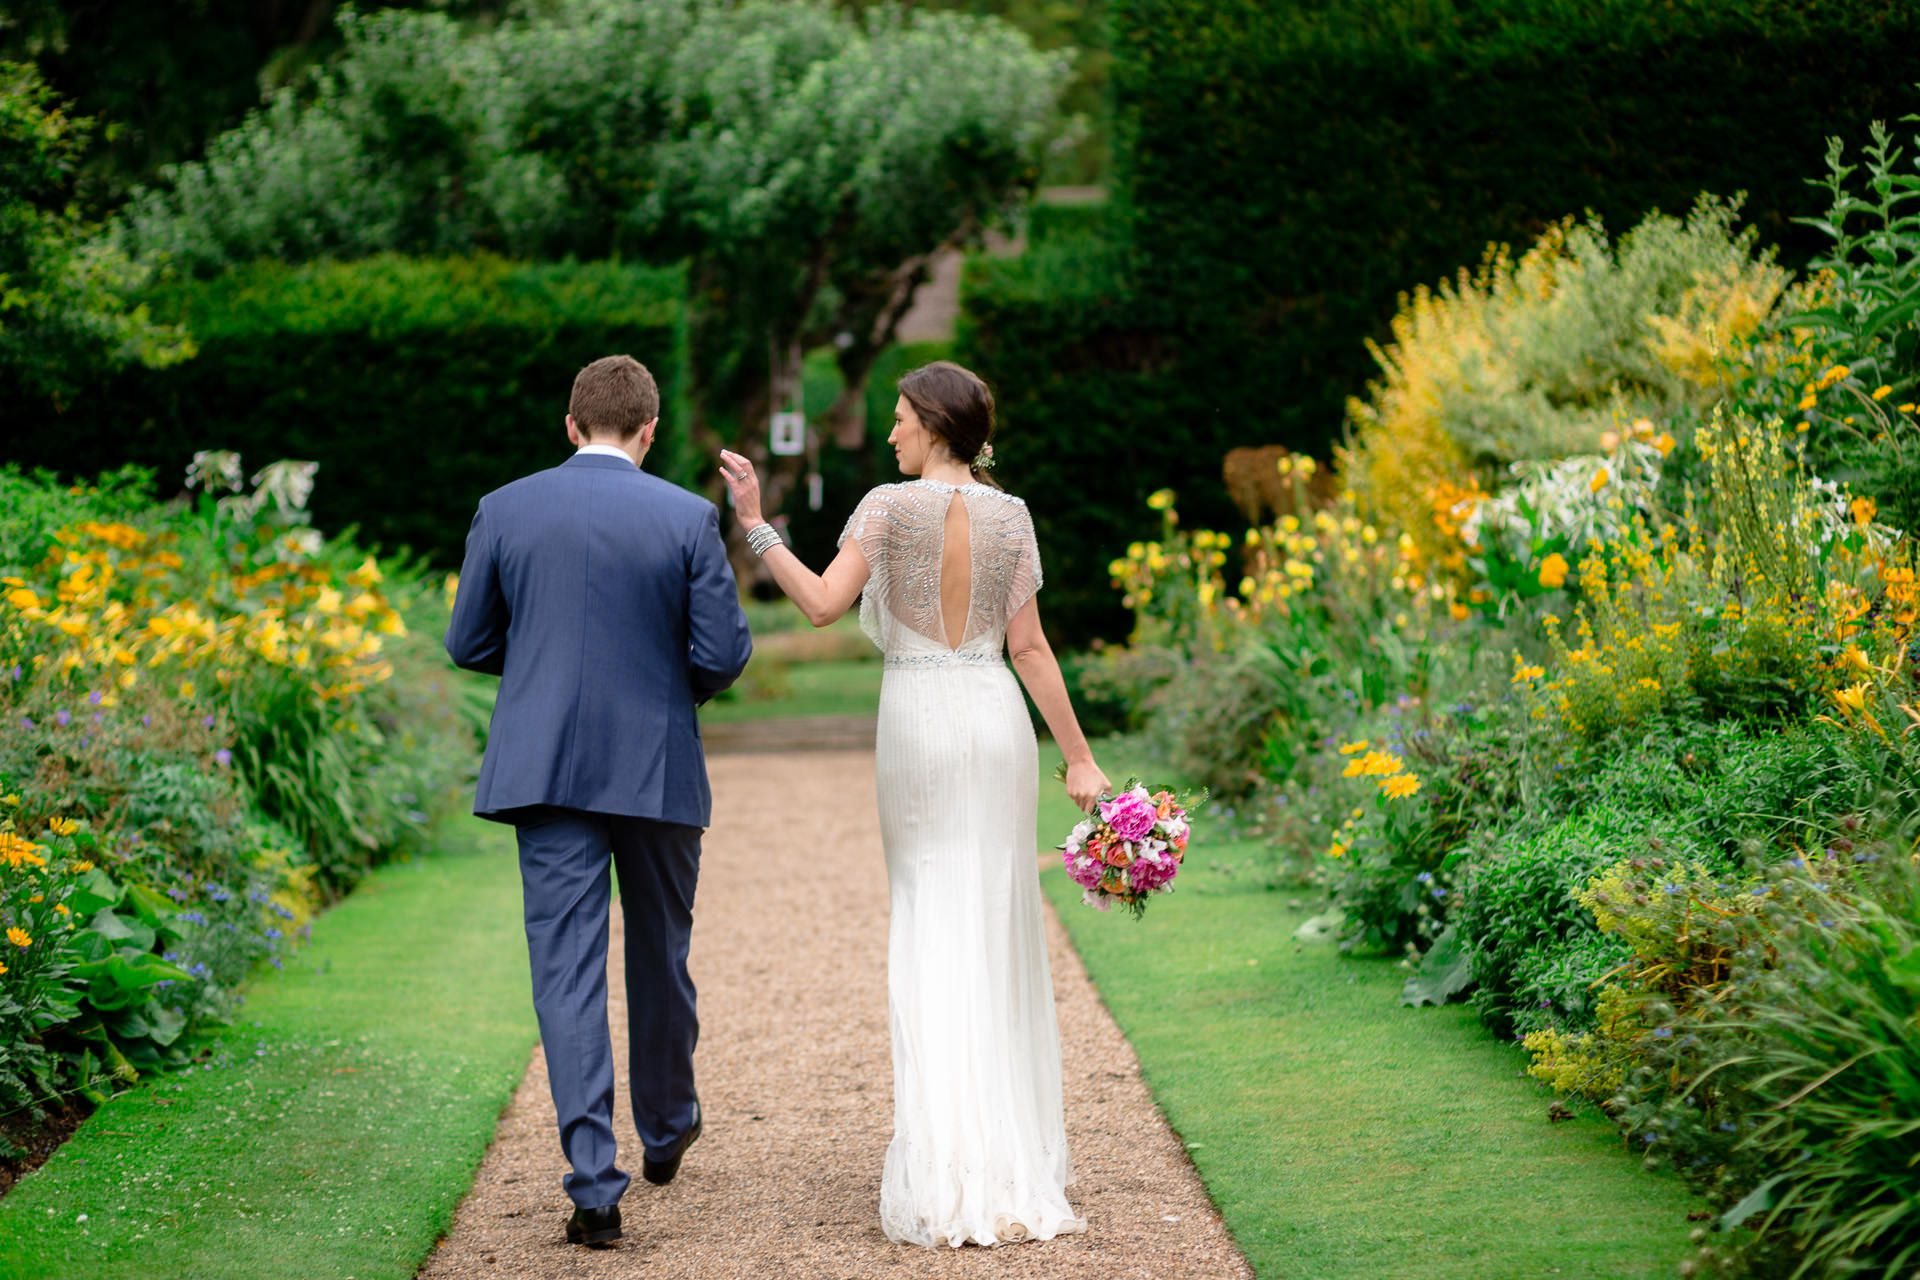 wedding photo session of julia and rob in the garden